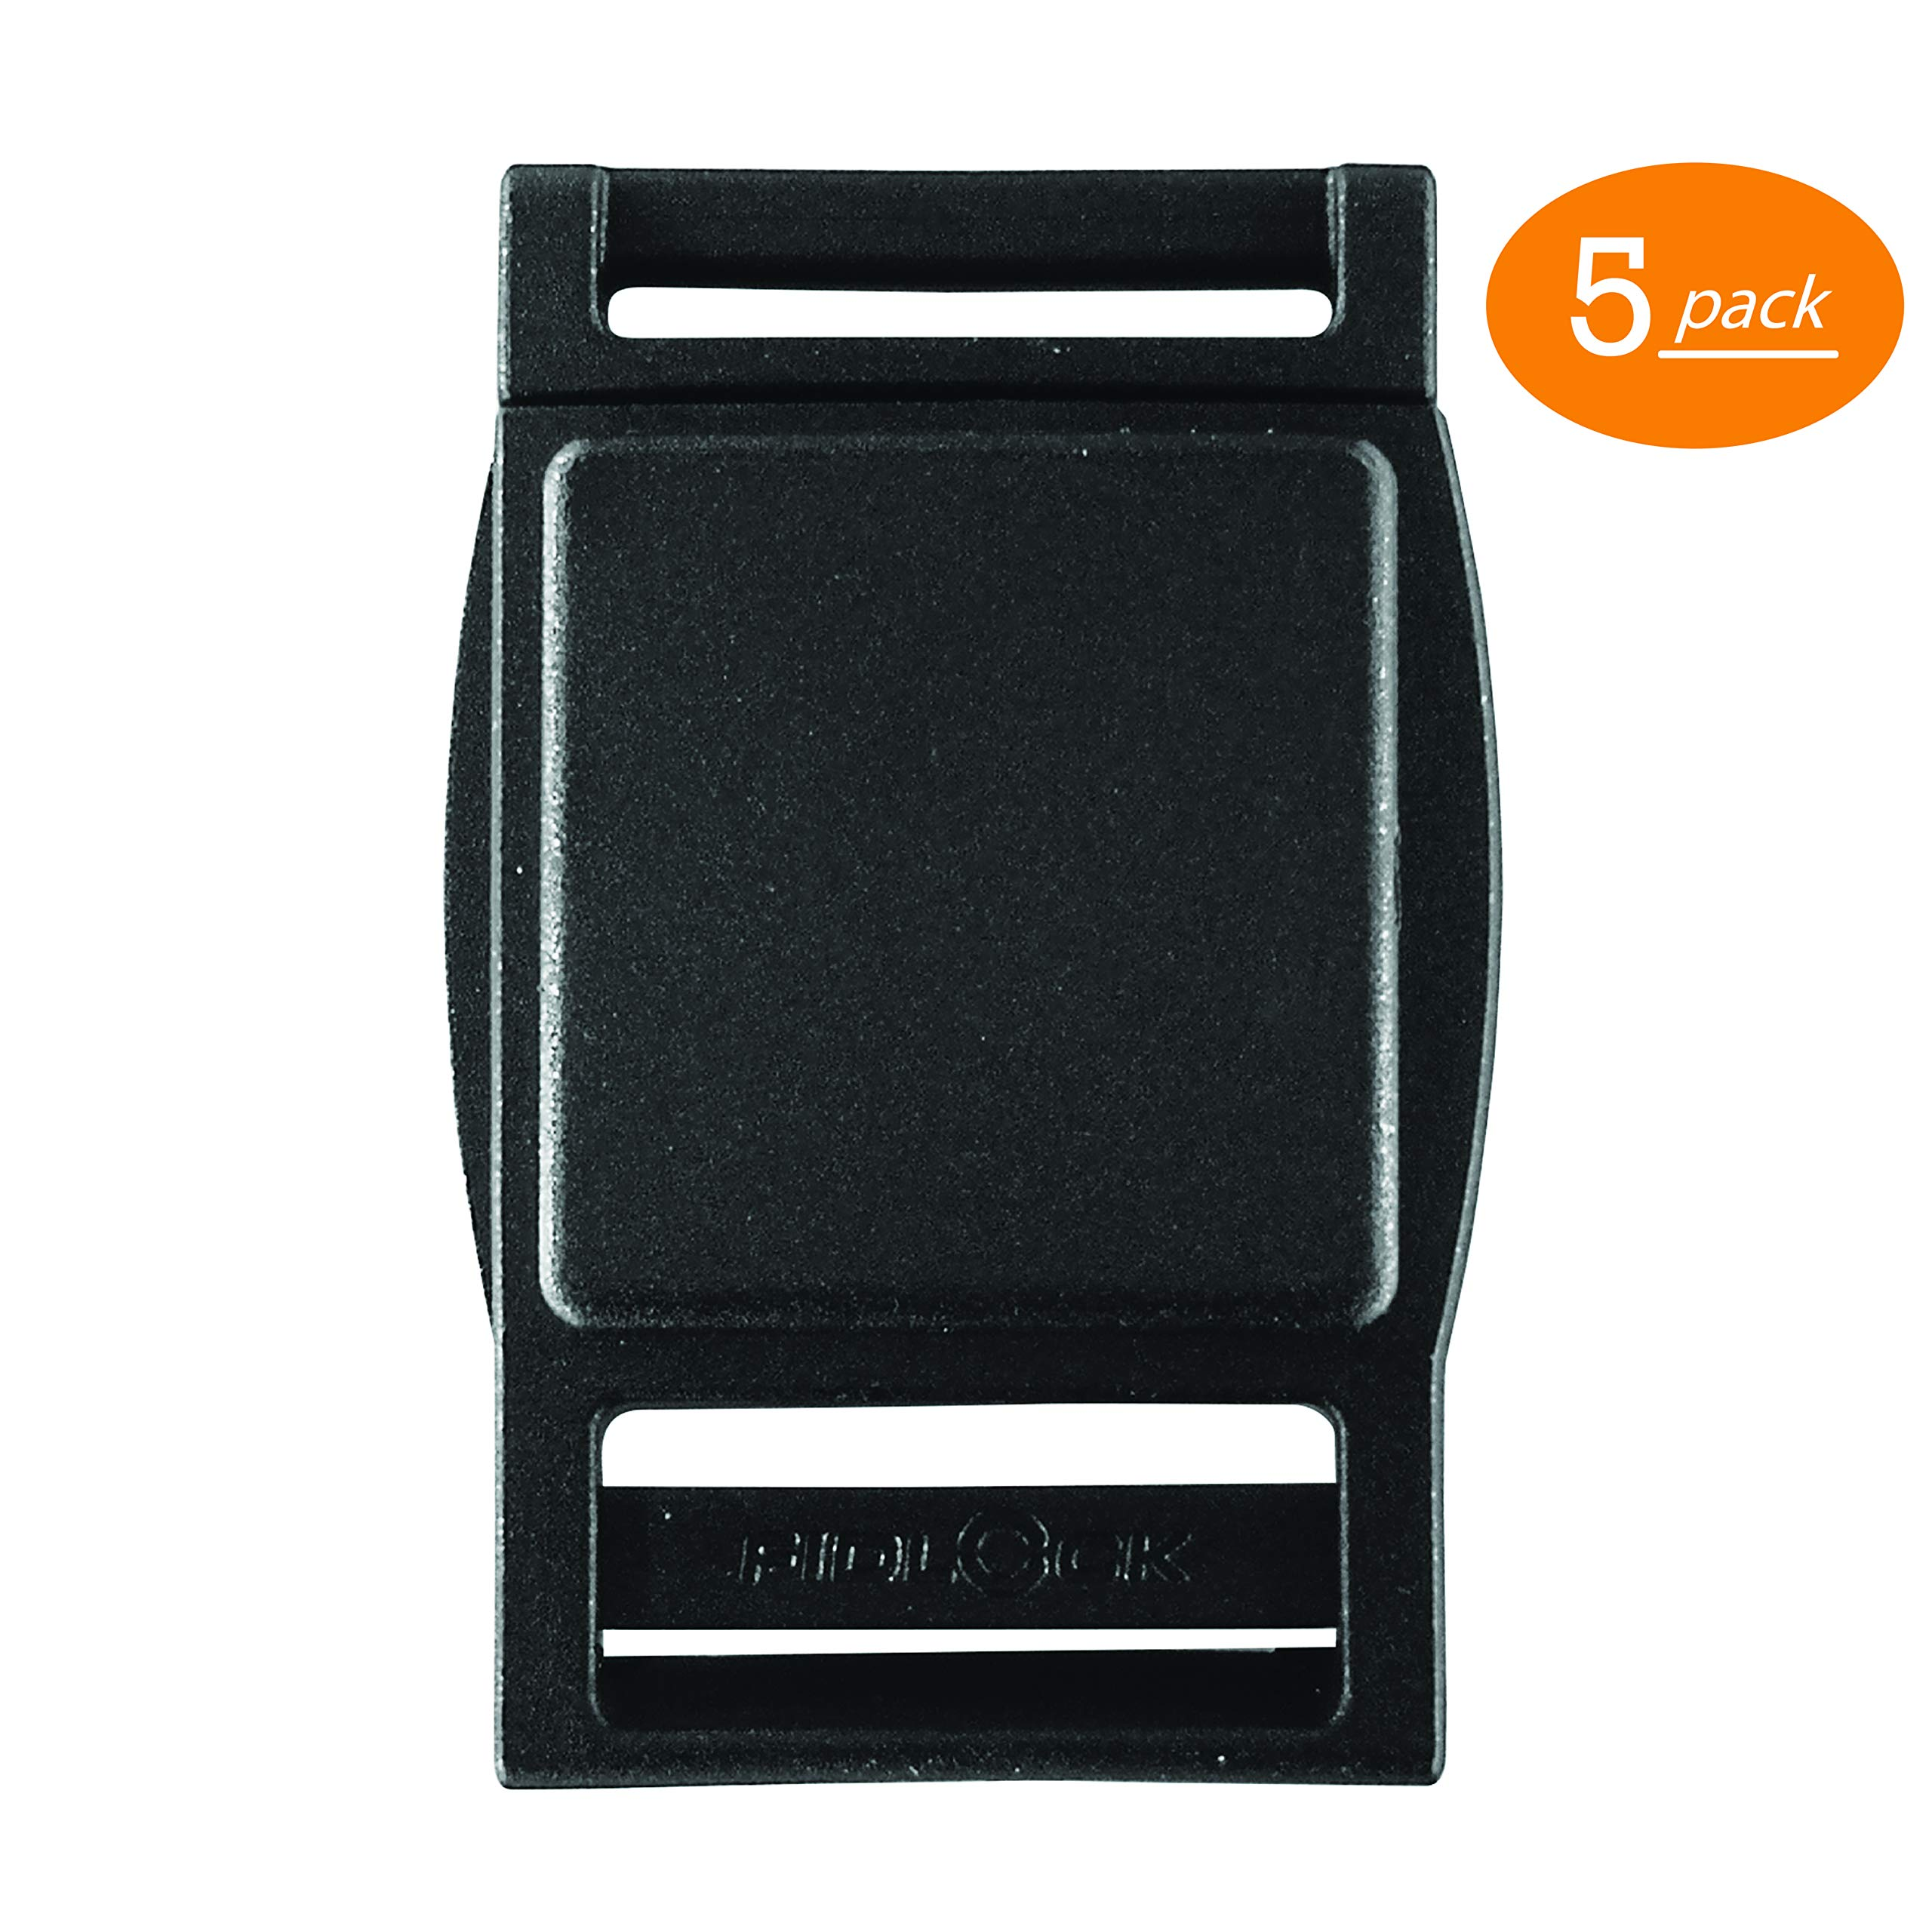 Fidlock Magnetic Buckle Quick Release Replacement Buckle - Black (25mm) (Pack of 5) by Fidlock